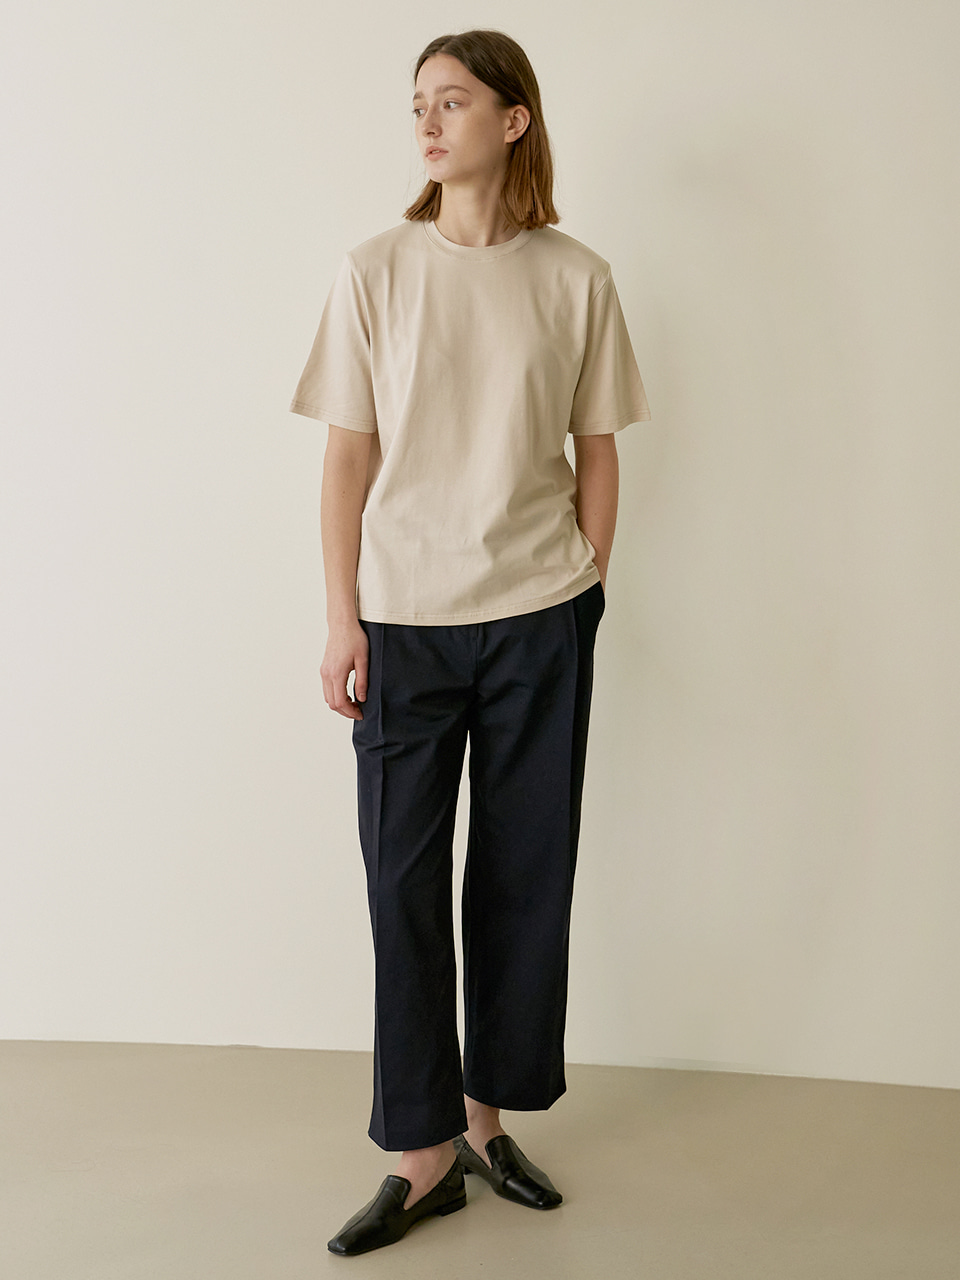 Daily slit T-shirt - Beige